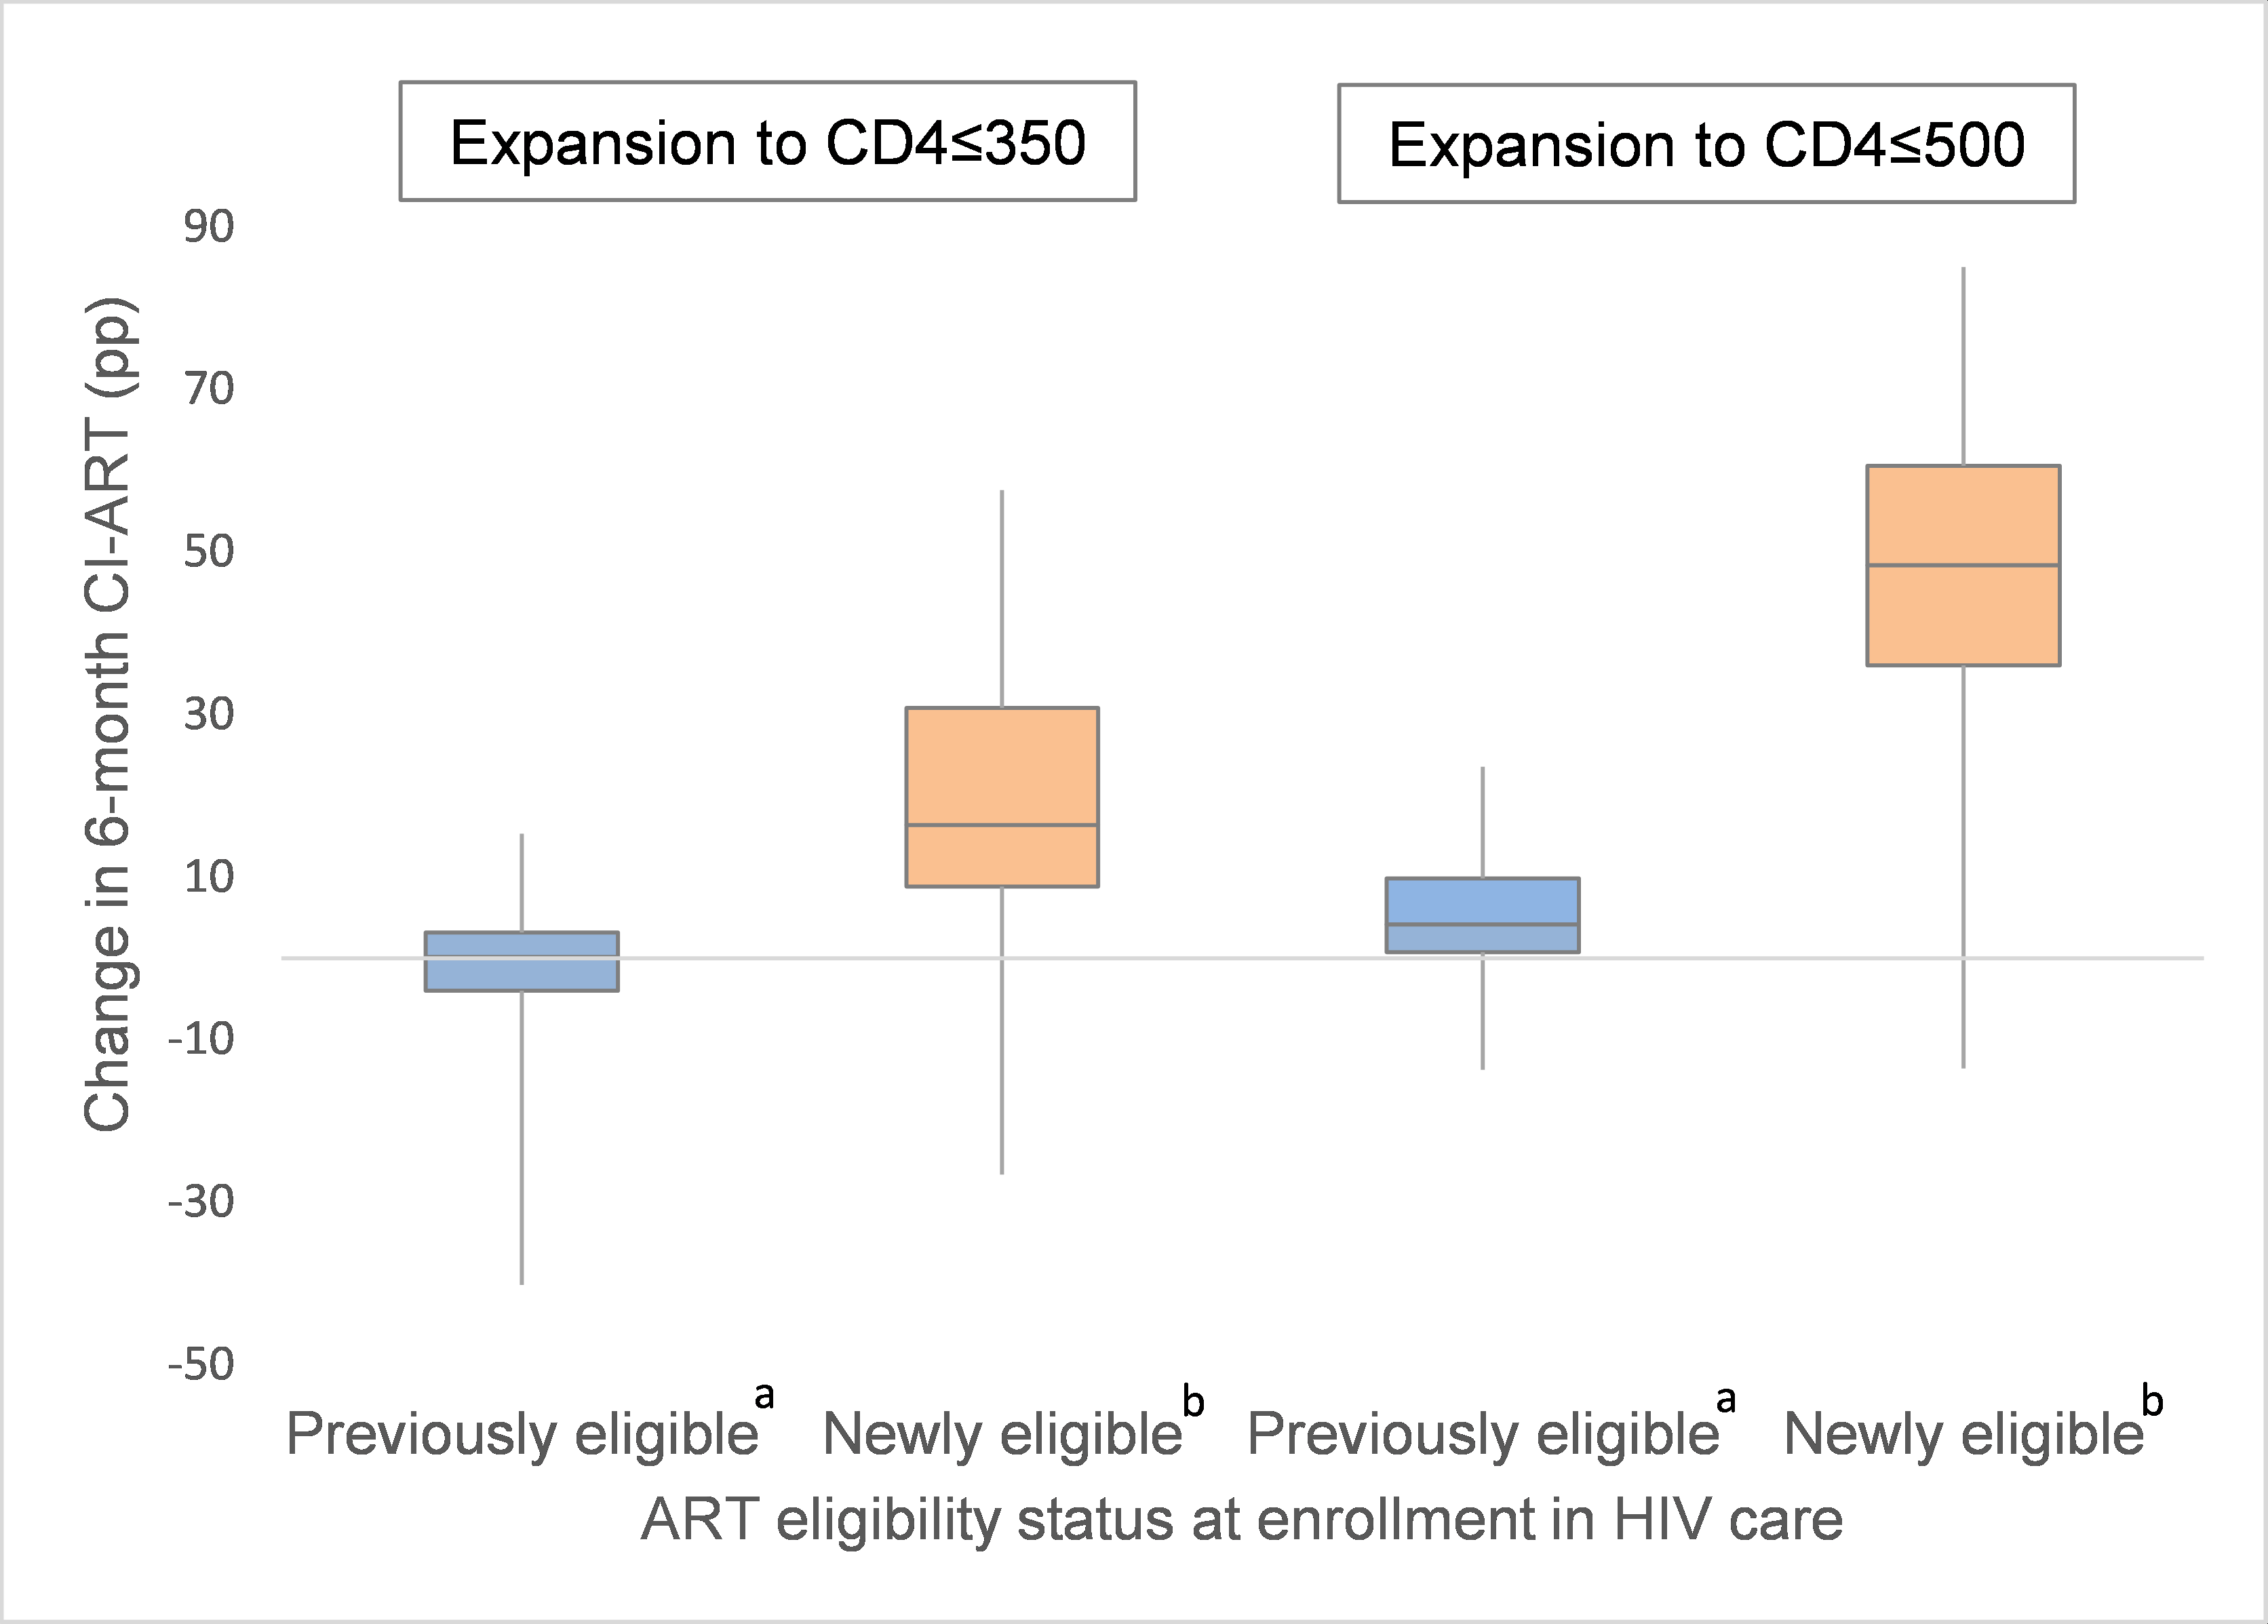 Distribution of site-level changes in 6-month cumulative incidence of antiretroviral treatment initiation (CI-ART) after expansions to CD4 ≤ 350 and CD4 ≤ 500, by patient ART eligibility status at enrollment.